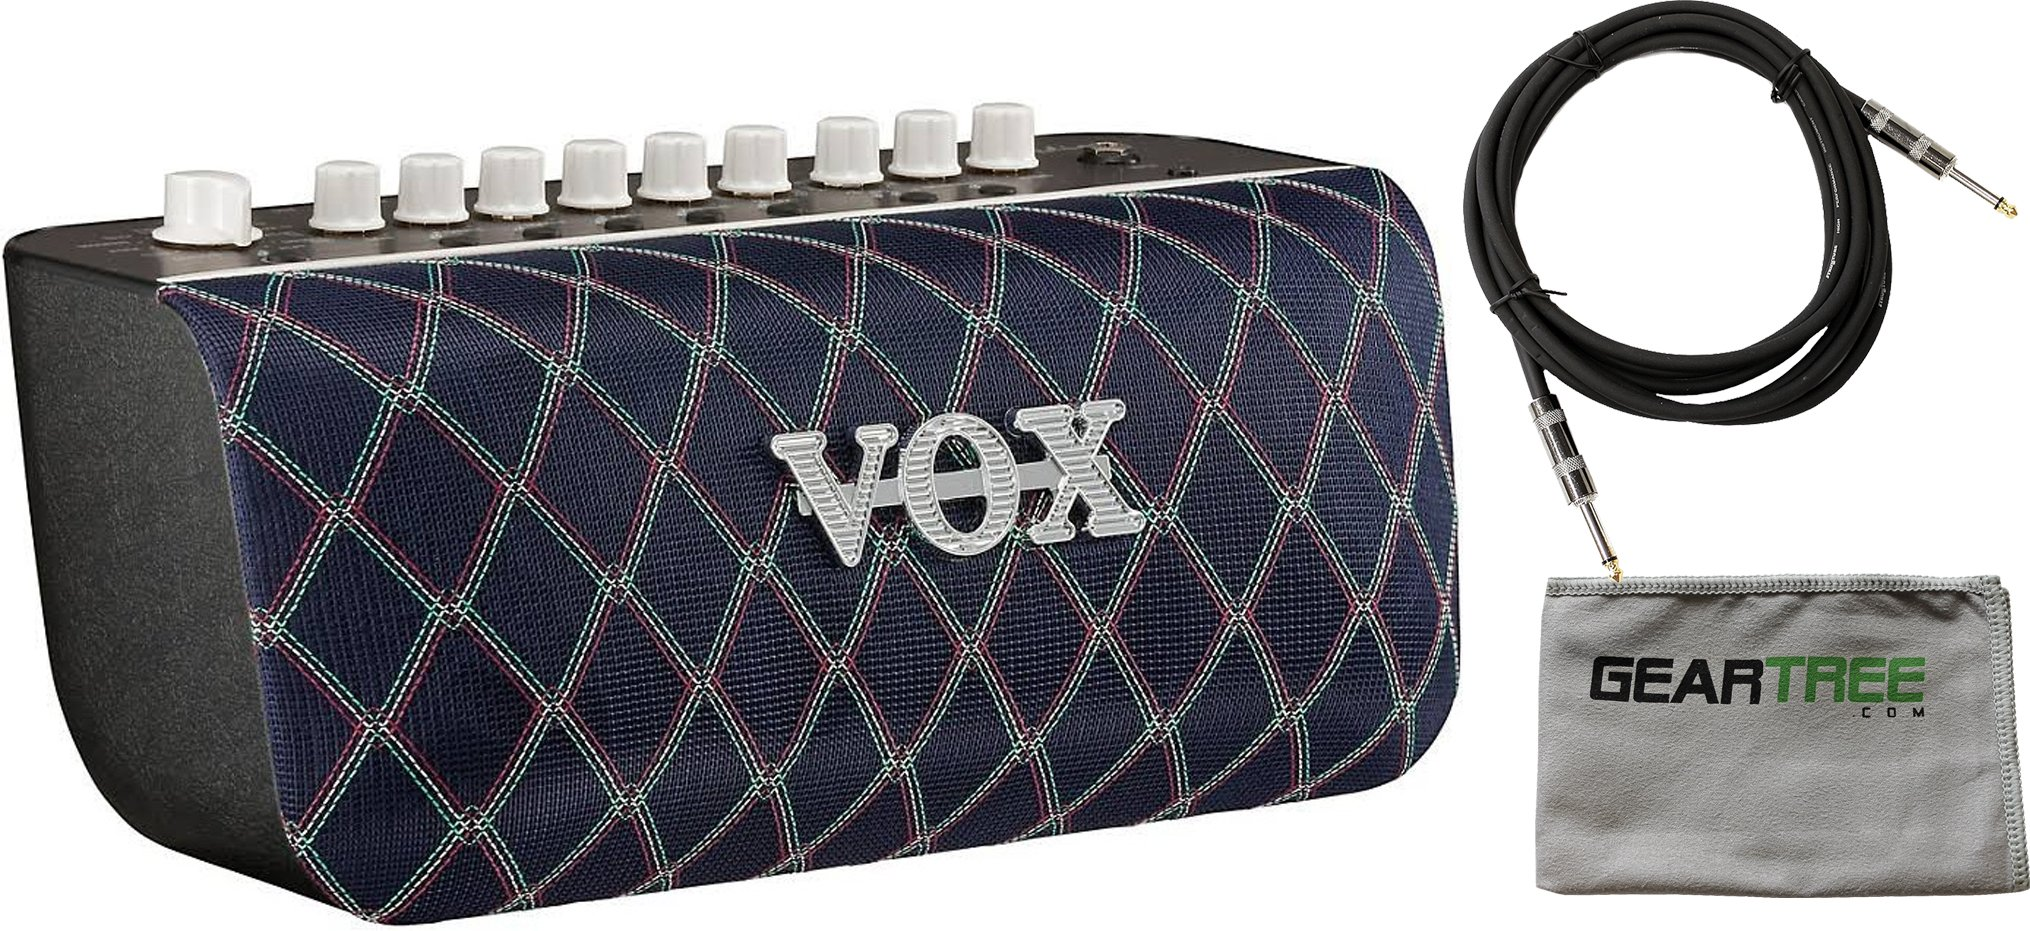 Vox Adio Air BS 50W 2x3 Bluetooth Modeling Bass Combo Amplifier w/ Cable and Geartree Cloth